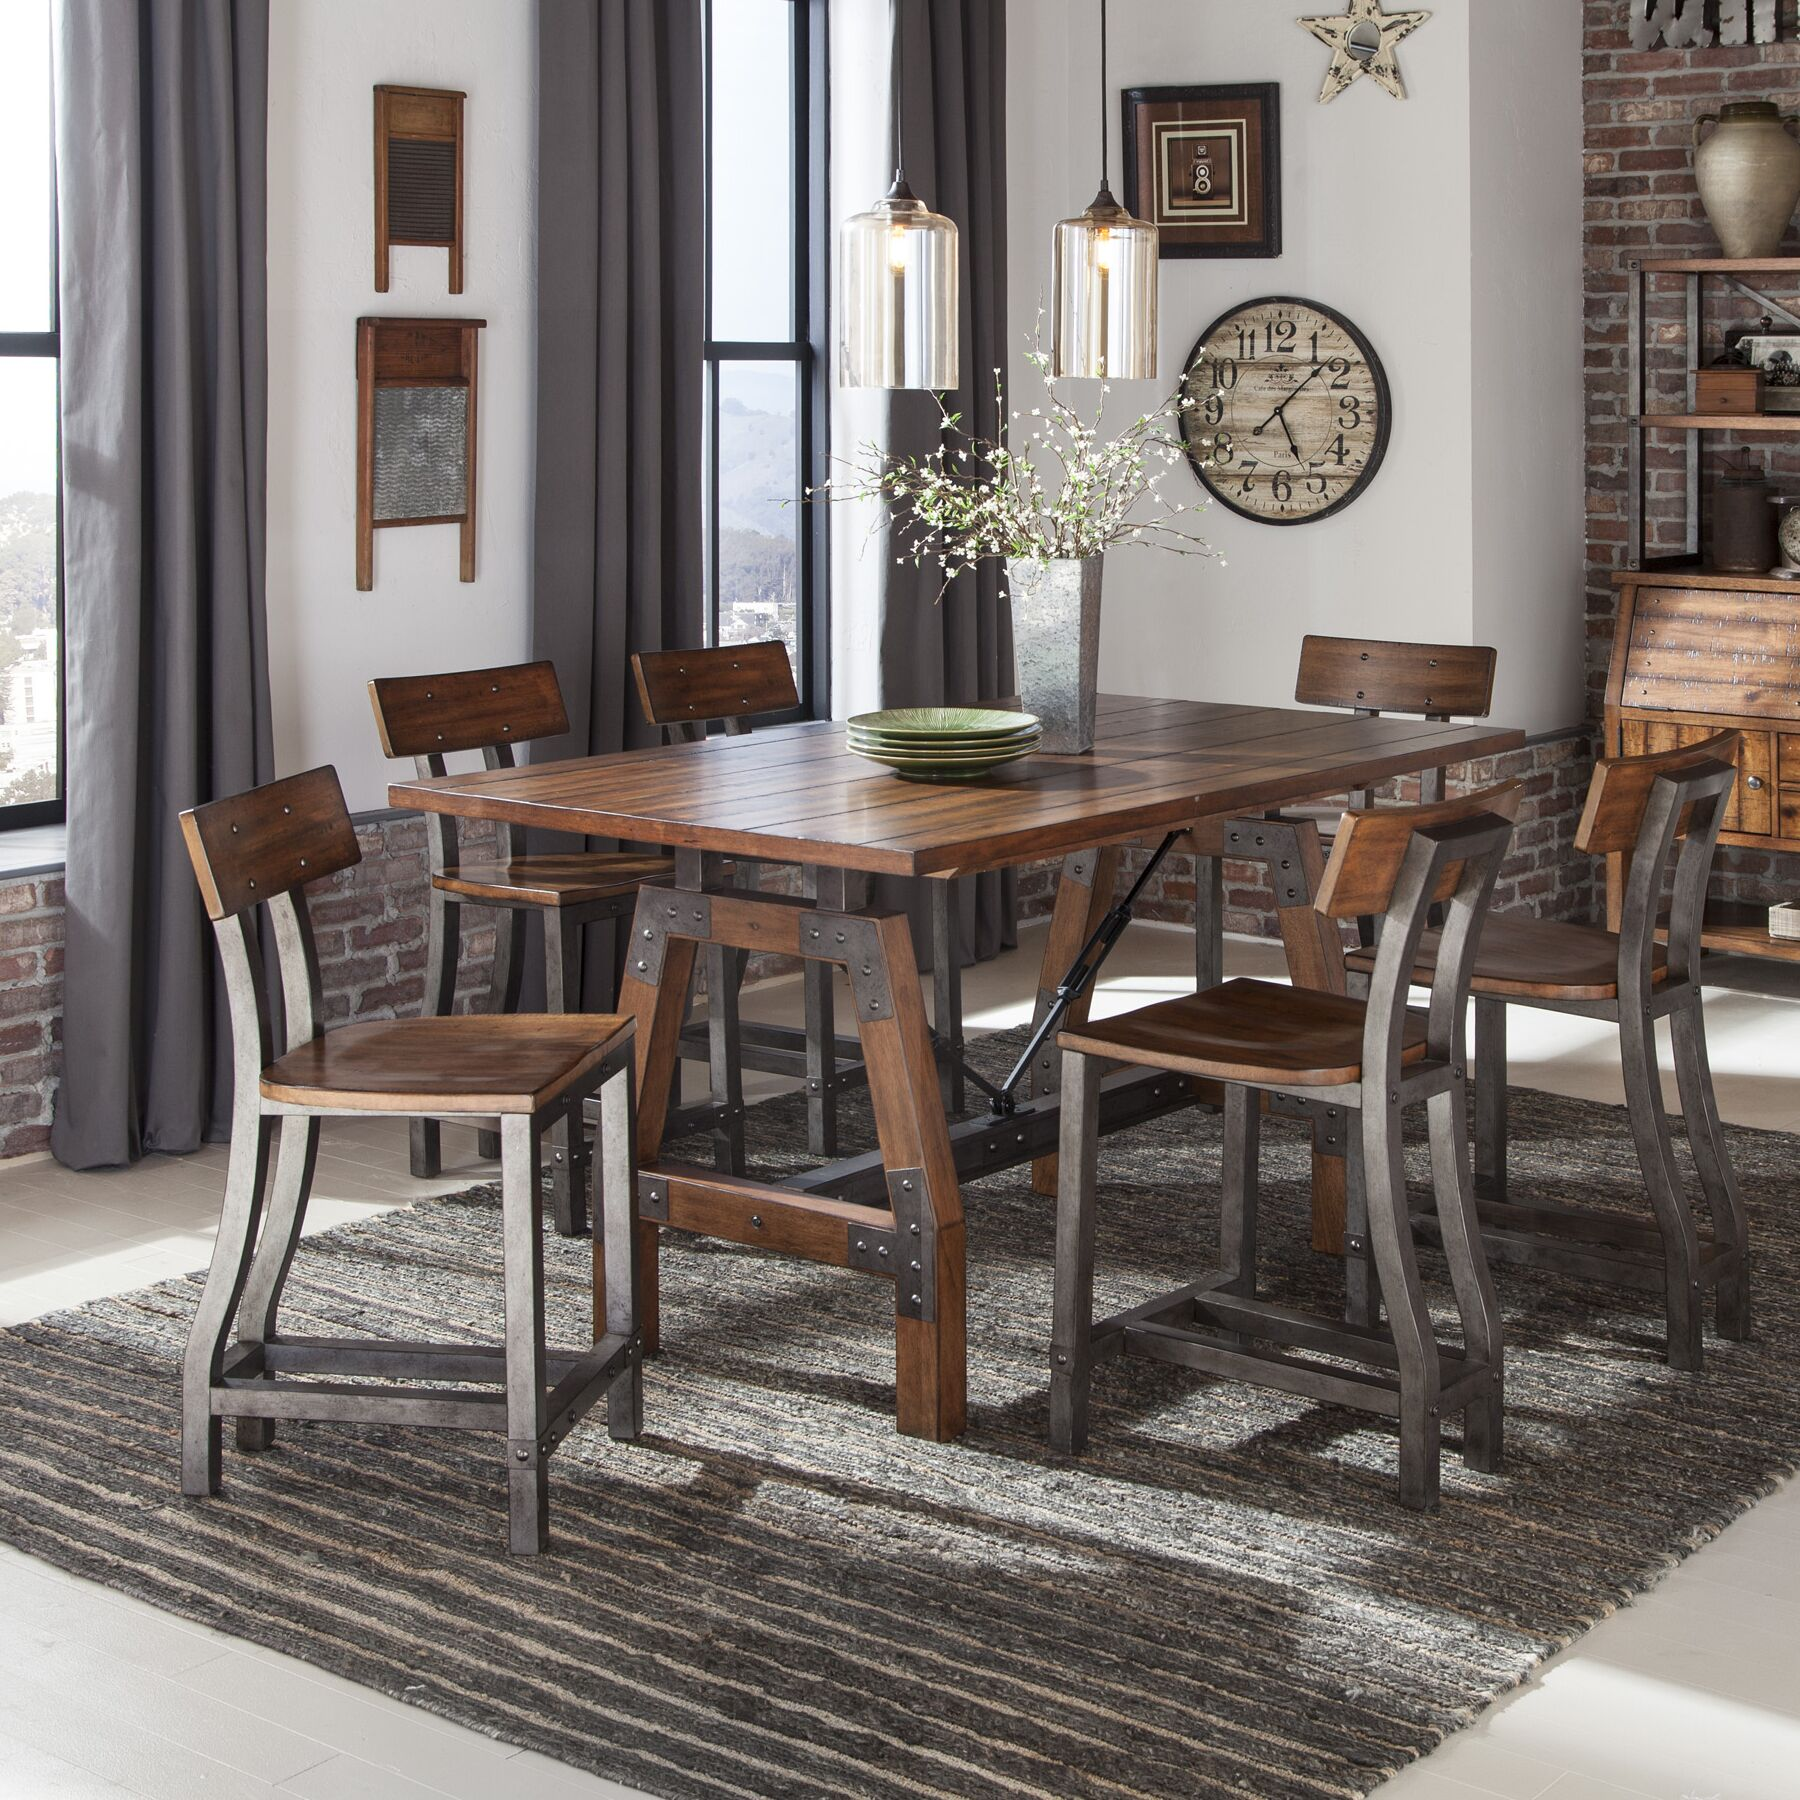 Dining Table Sets Hawkinge 7 Piece Counter Height Dining Set